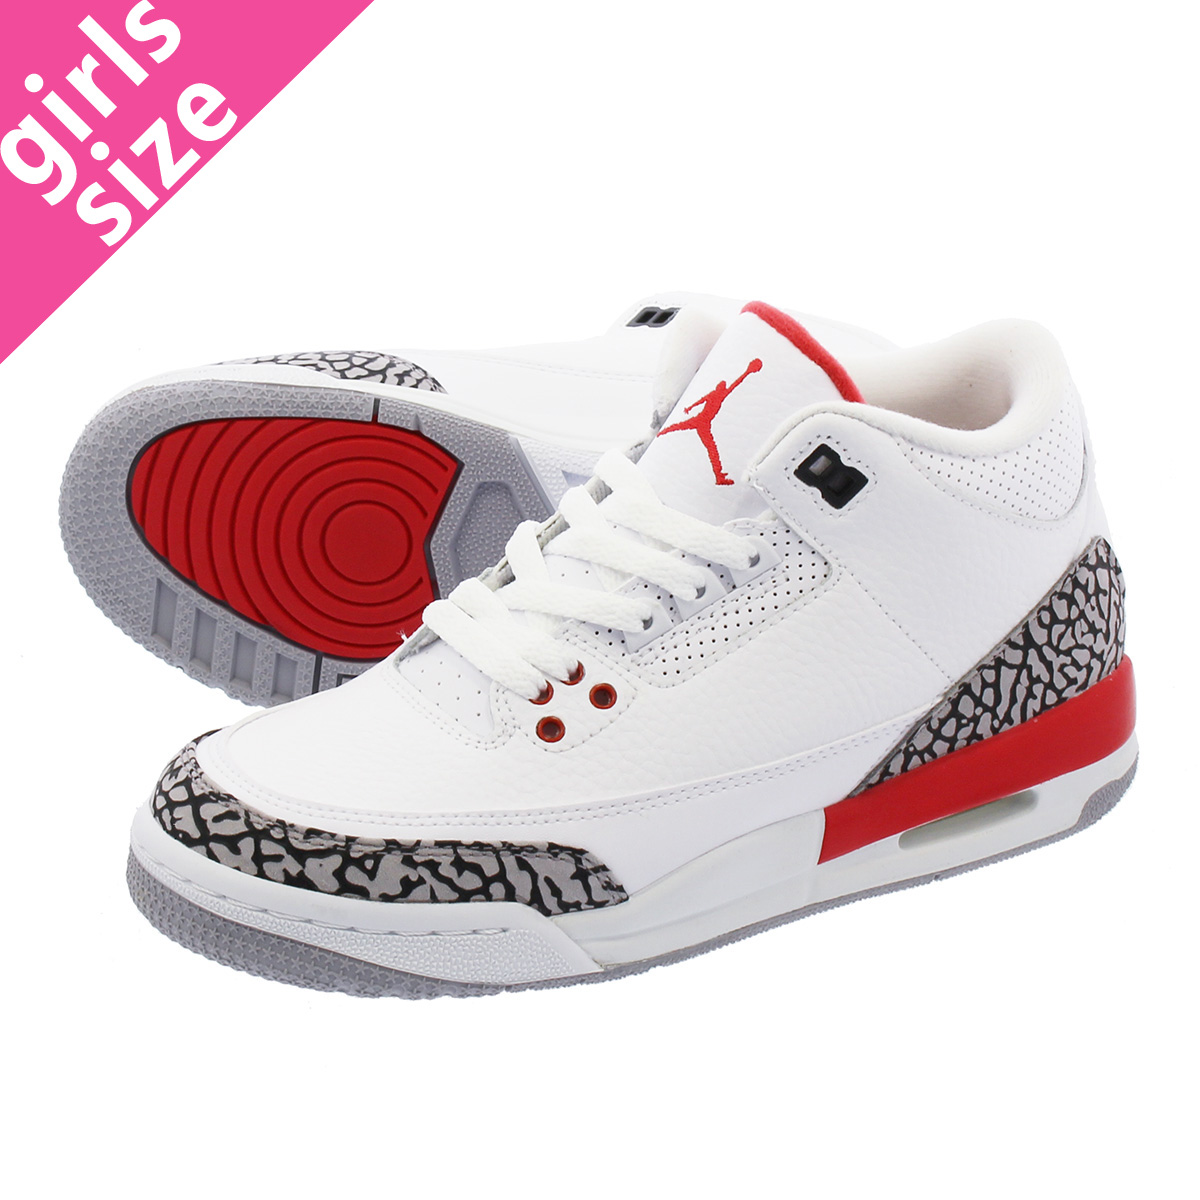 7eea4c879db LOWTEX PLUS: NIKE AIR JORDAN 3 RETRO BG Nike Air Jordan 3 nostalgic BG  WHITE/CEMENT GREY/FIRE RED 398,614-116 | Rakuten Global Market